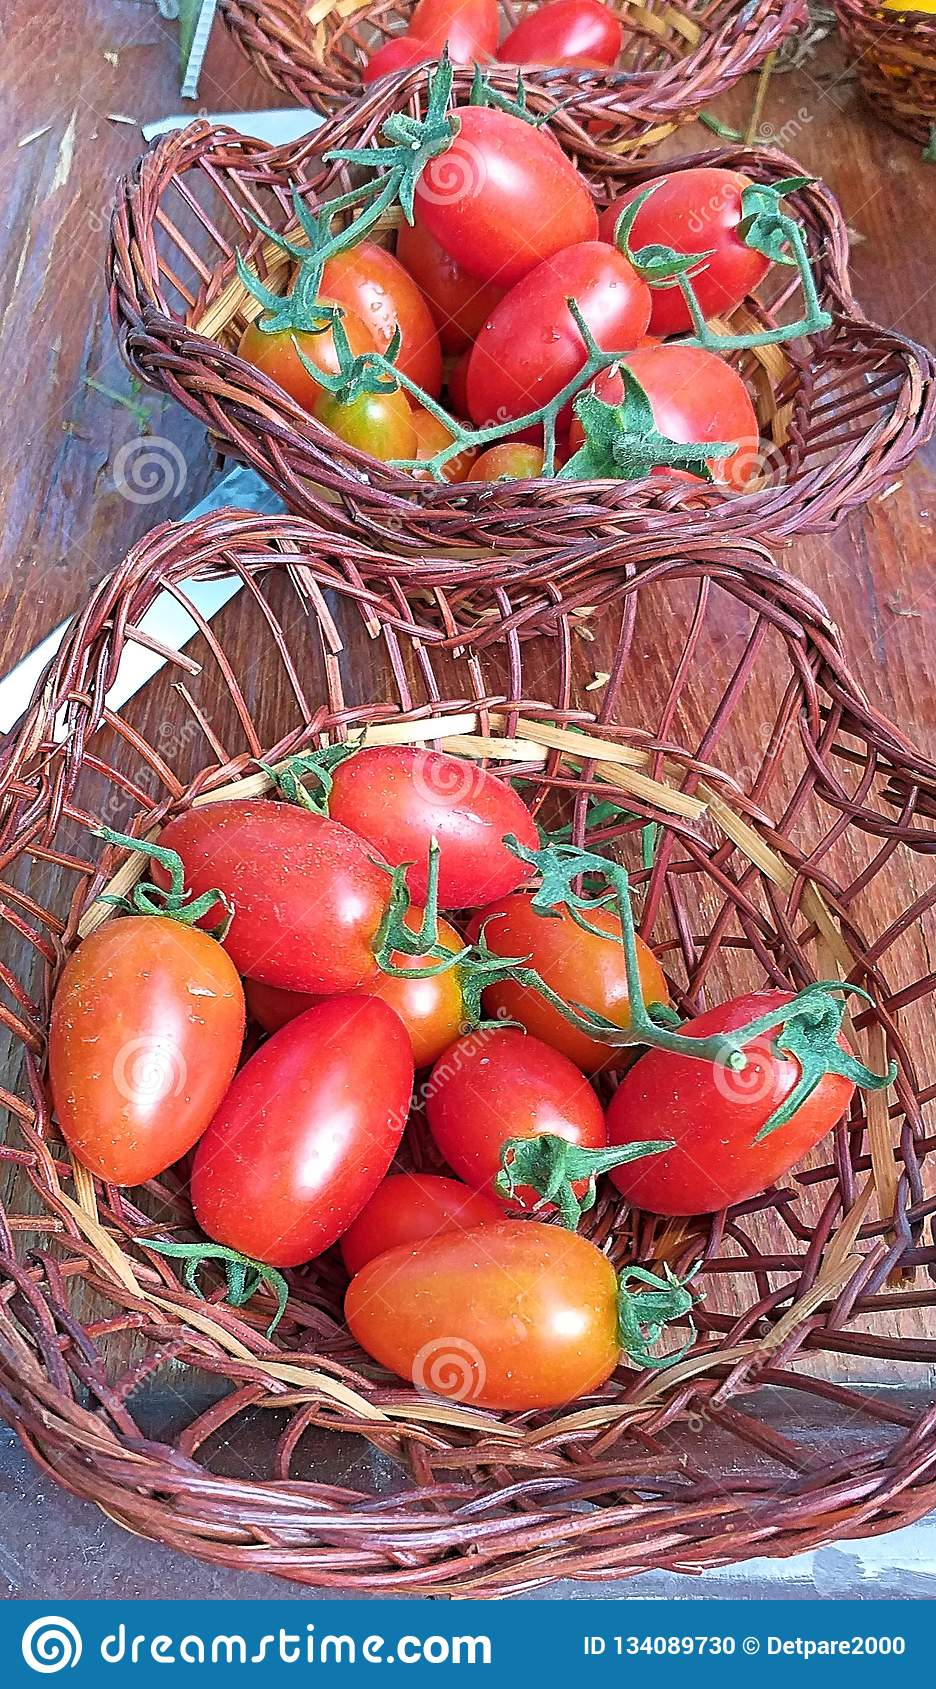 Tomatoes. agricultural product.